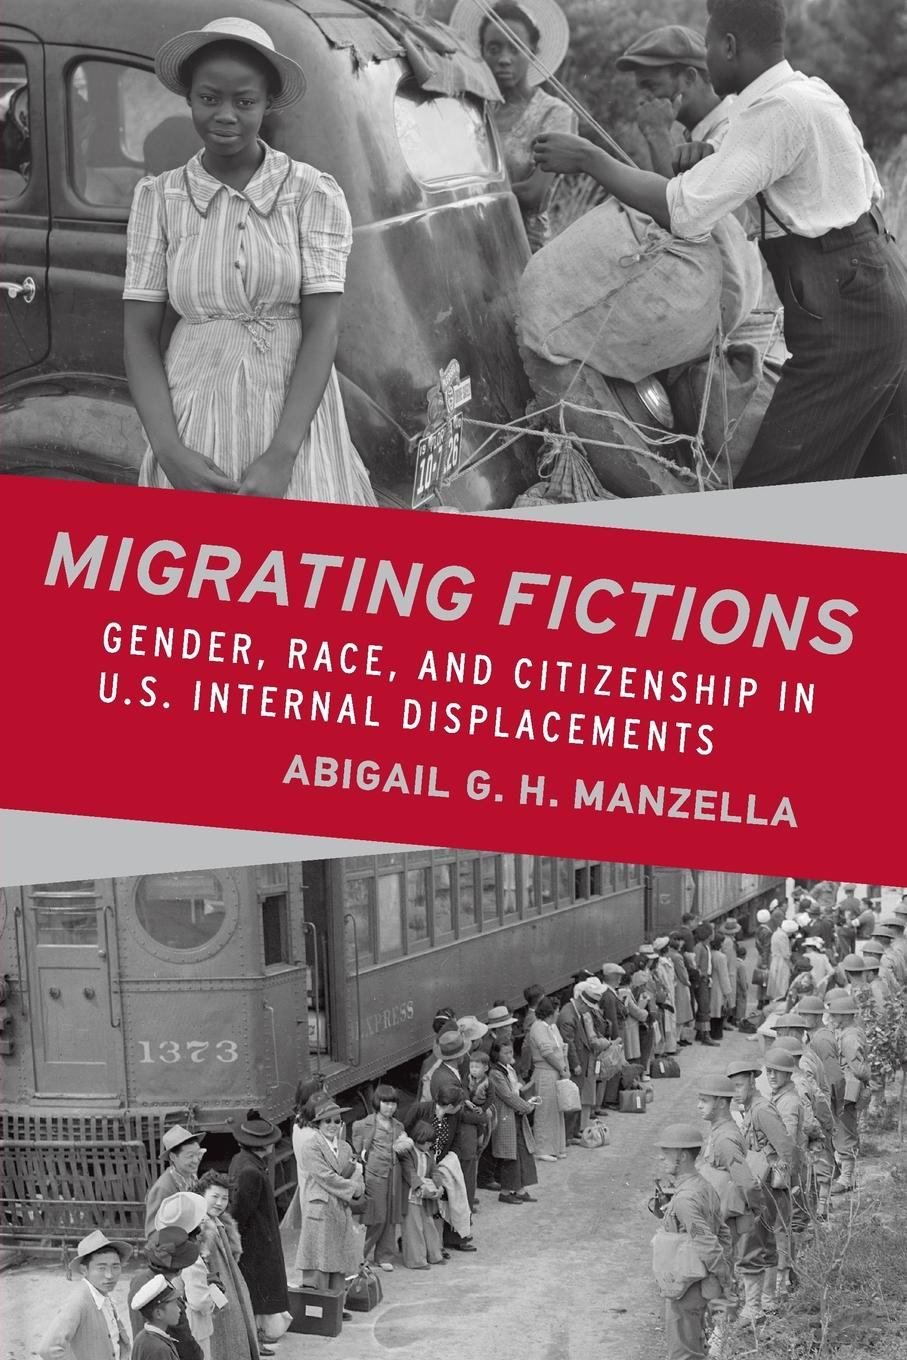 Abigail G. H. Manzella Migrating Fictions. Gender, Race, and Citizenship in U.S. Internal Displacements timothy henderson j beyond borders a history of mexican migration to the united states